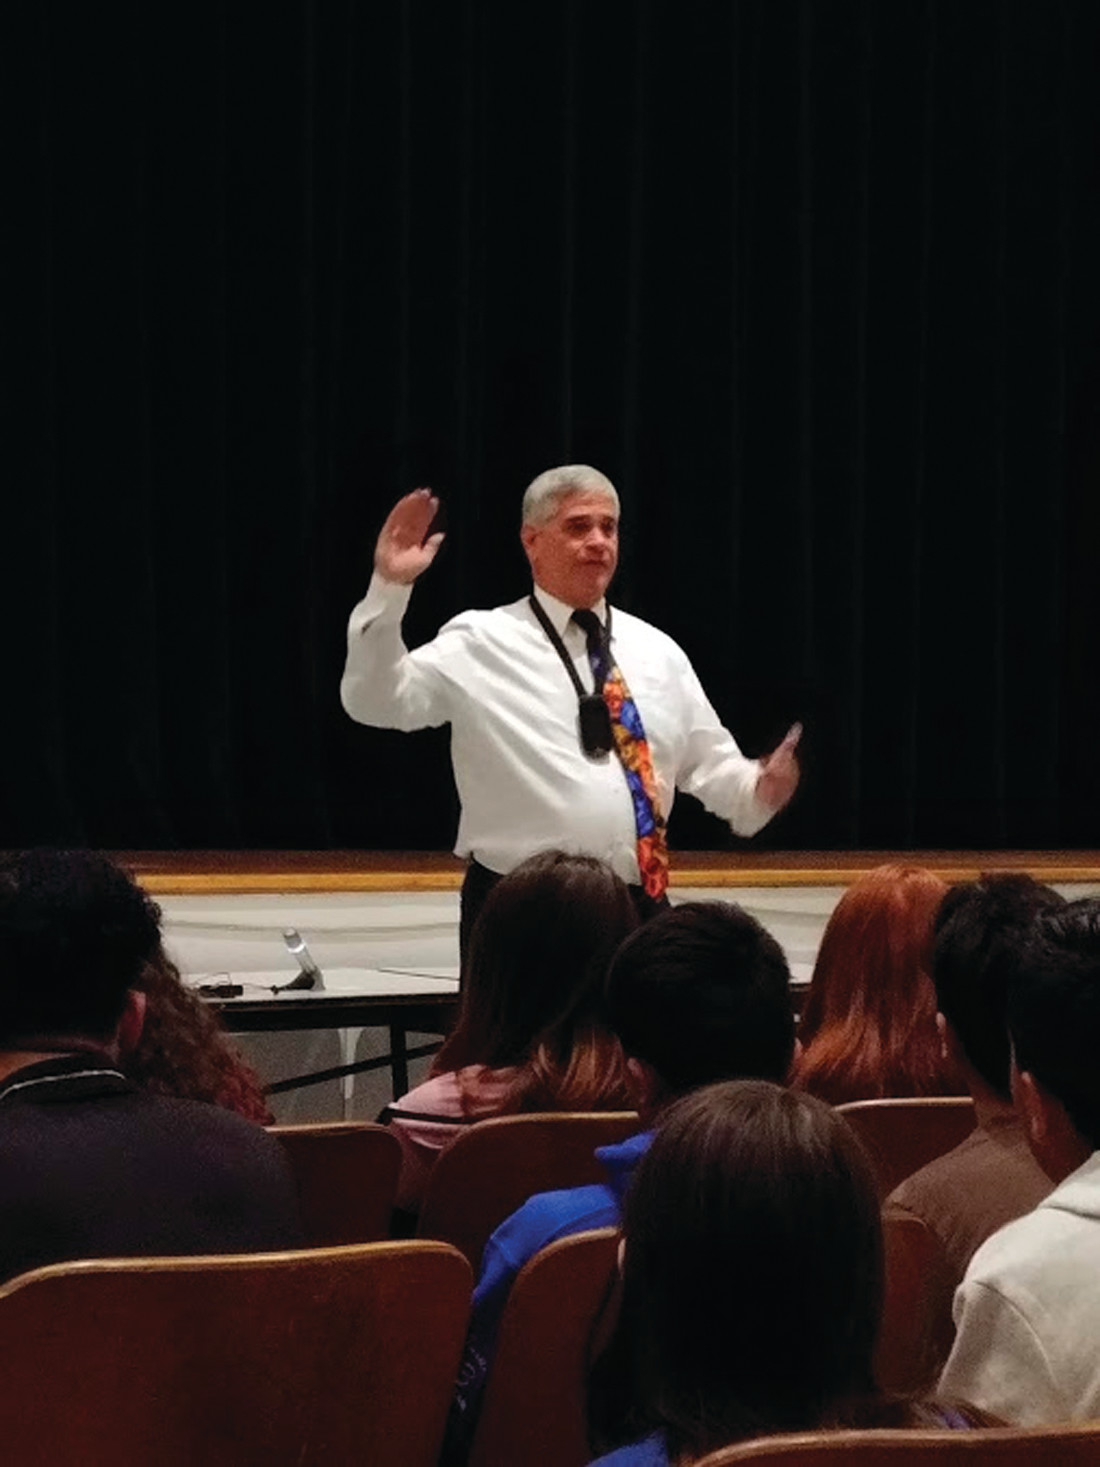 NEVER TOO OLD: Kilmartin gave the eighth-graders at Park View Middle School great advice about pursuing their passions, no matter how old they are.